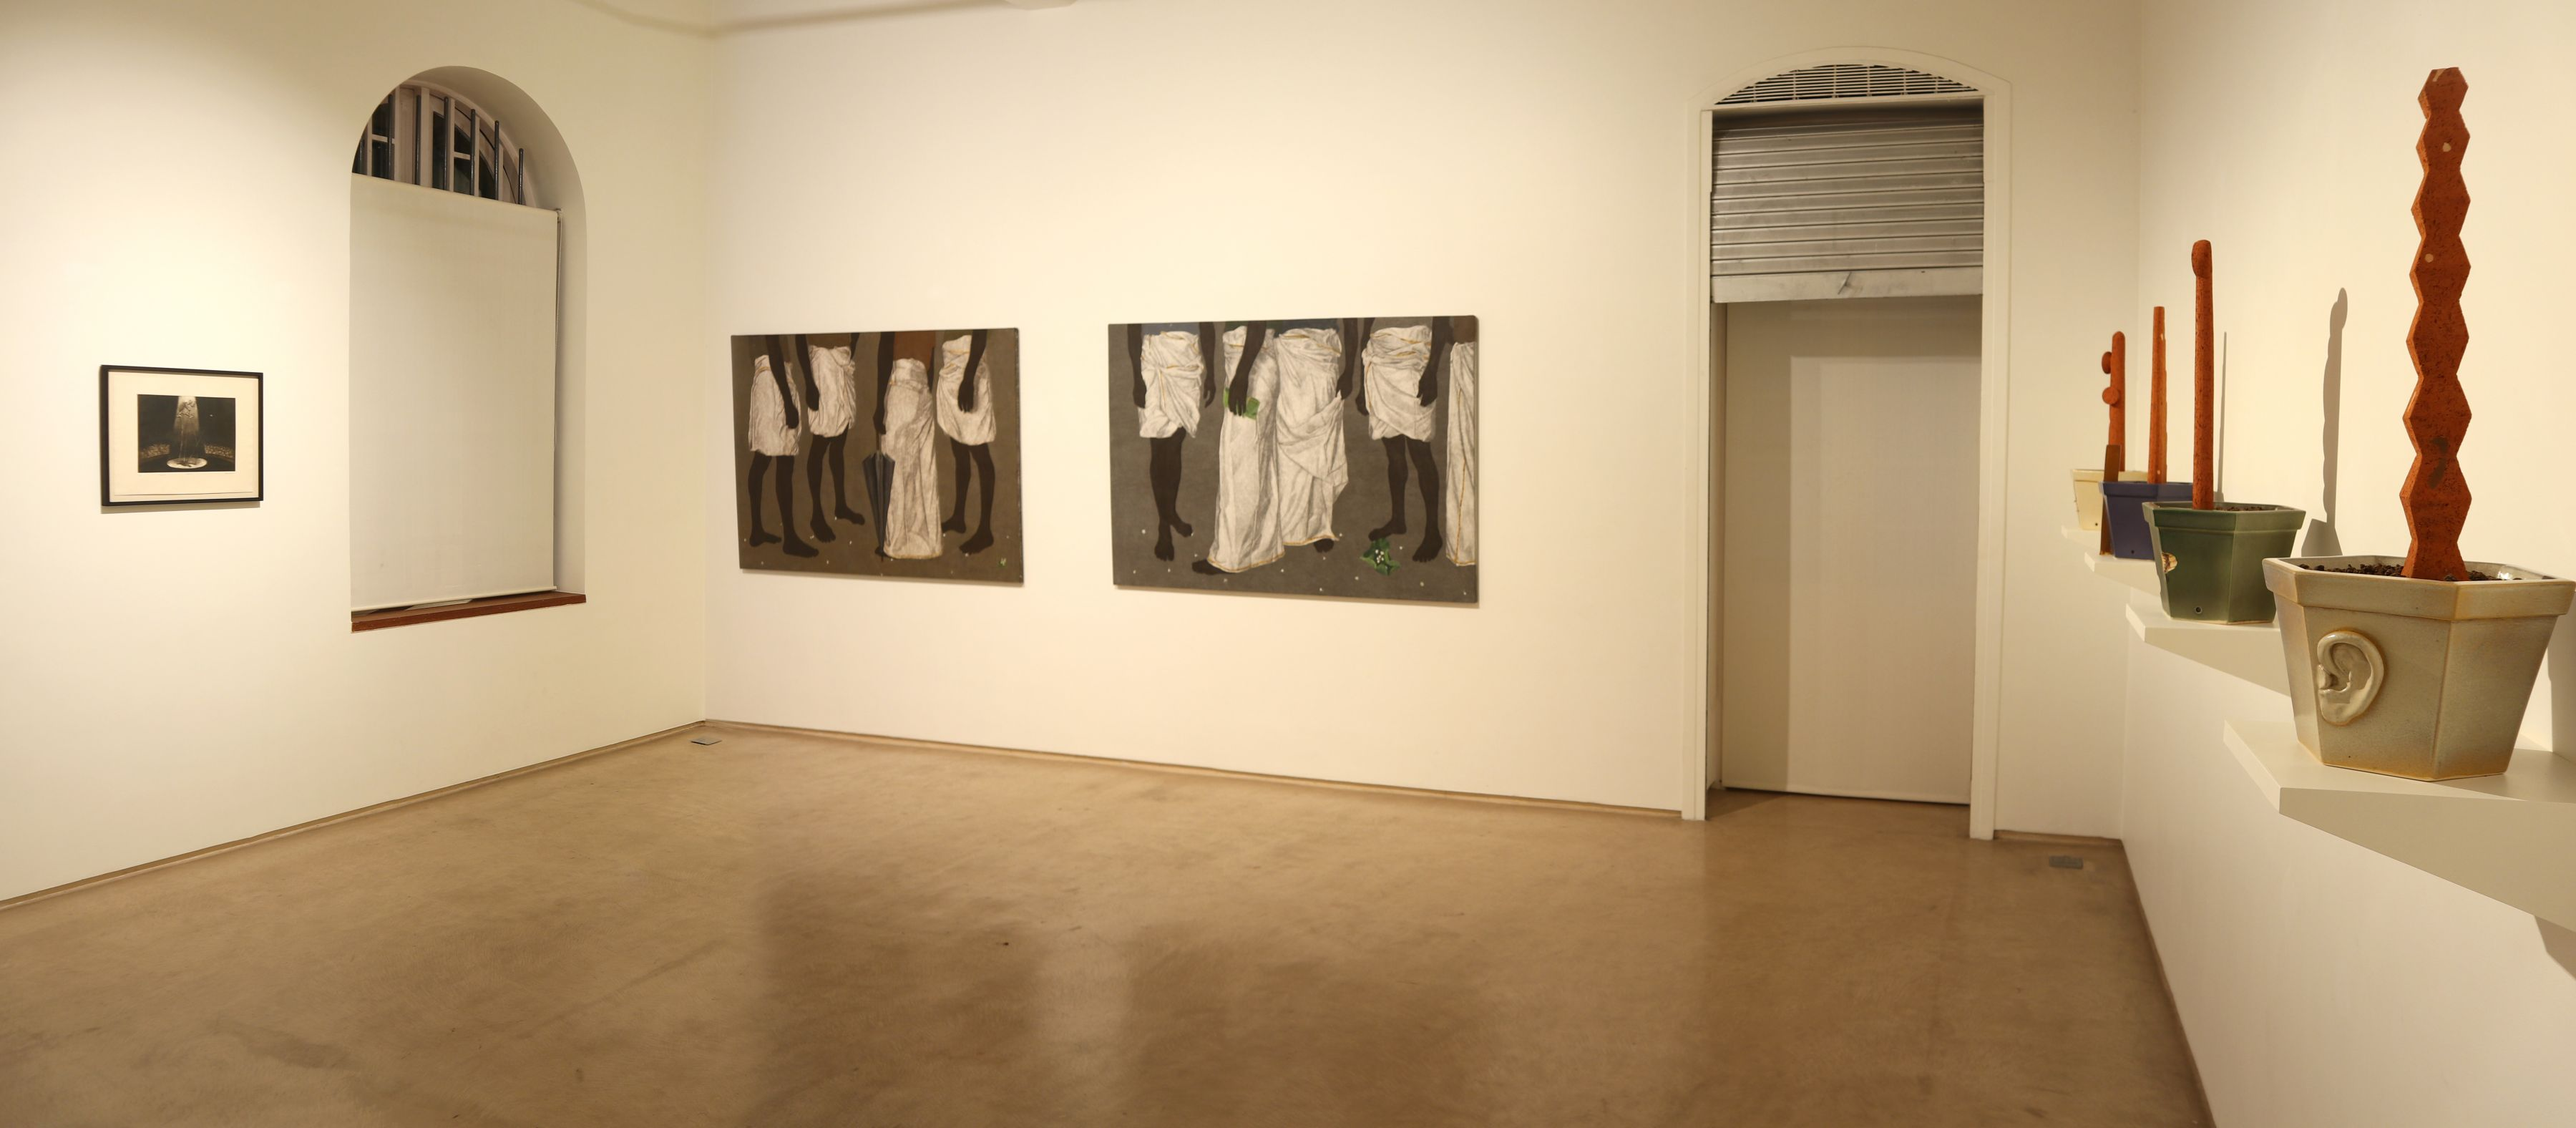 Installation View (Gallery1)